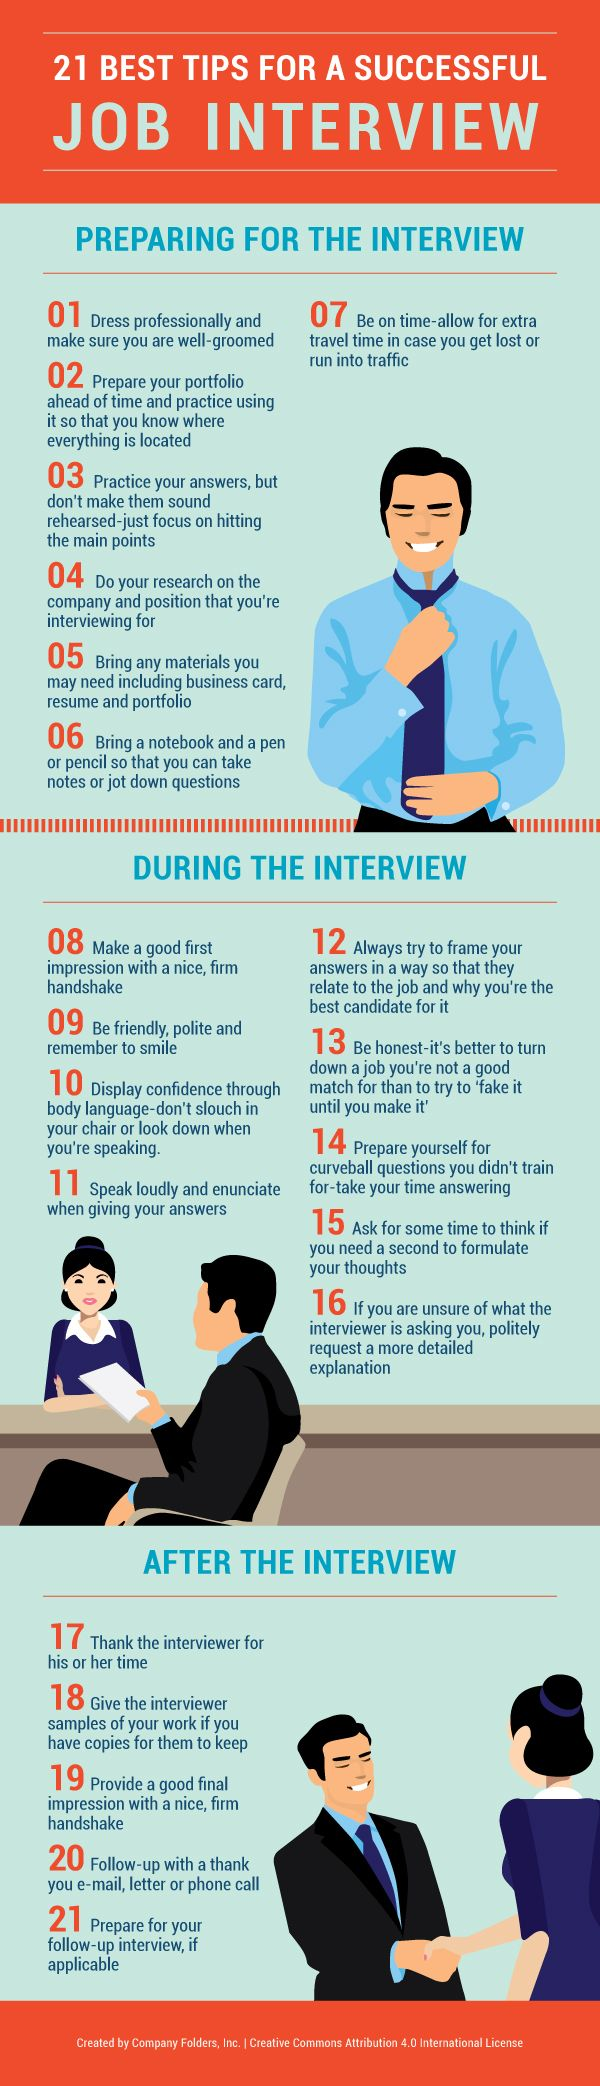 best ideas about tips for interview job this infographic gives the 21 best tips for a successful job interview it has